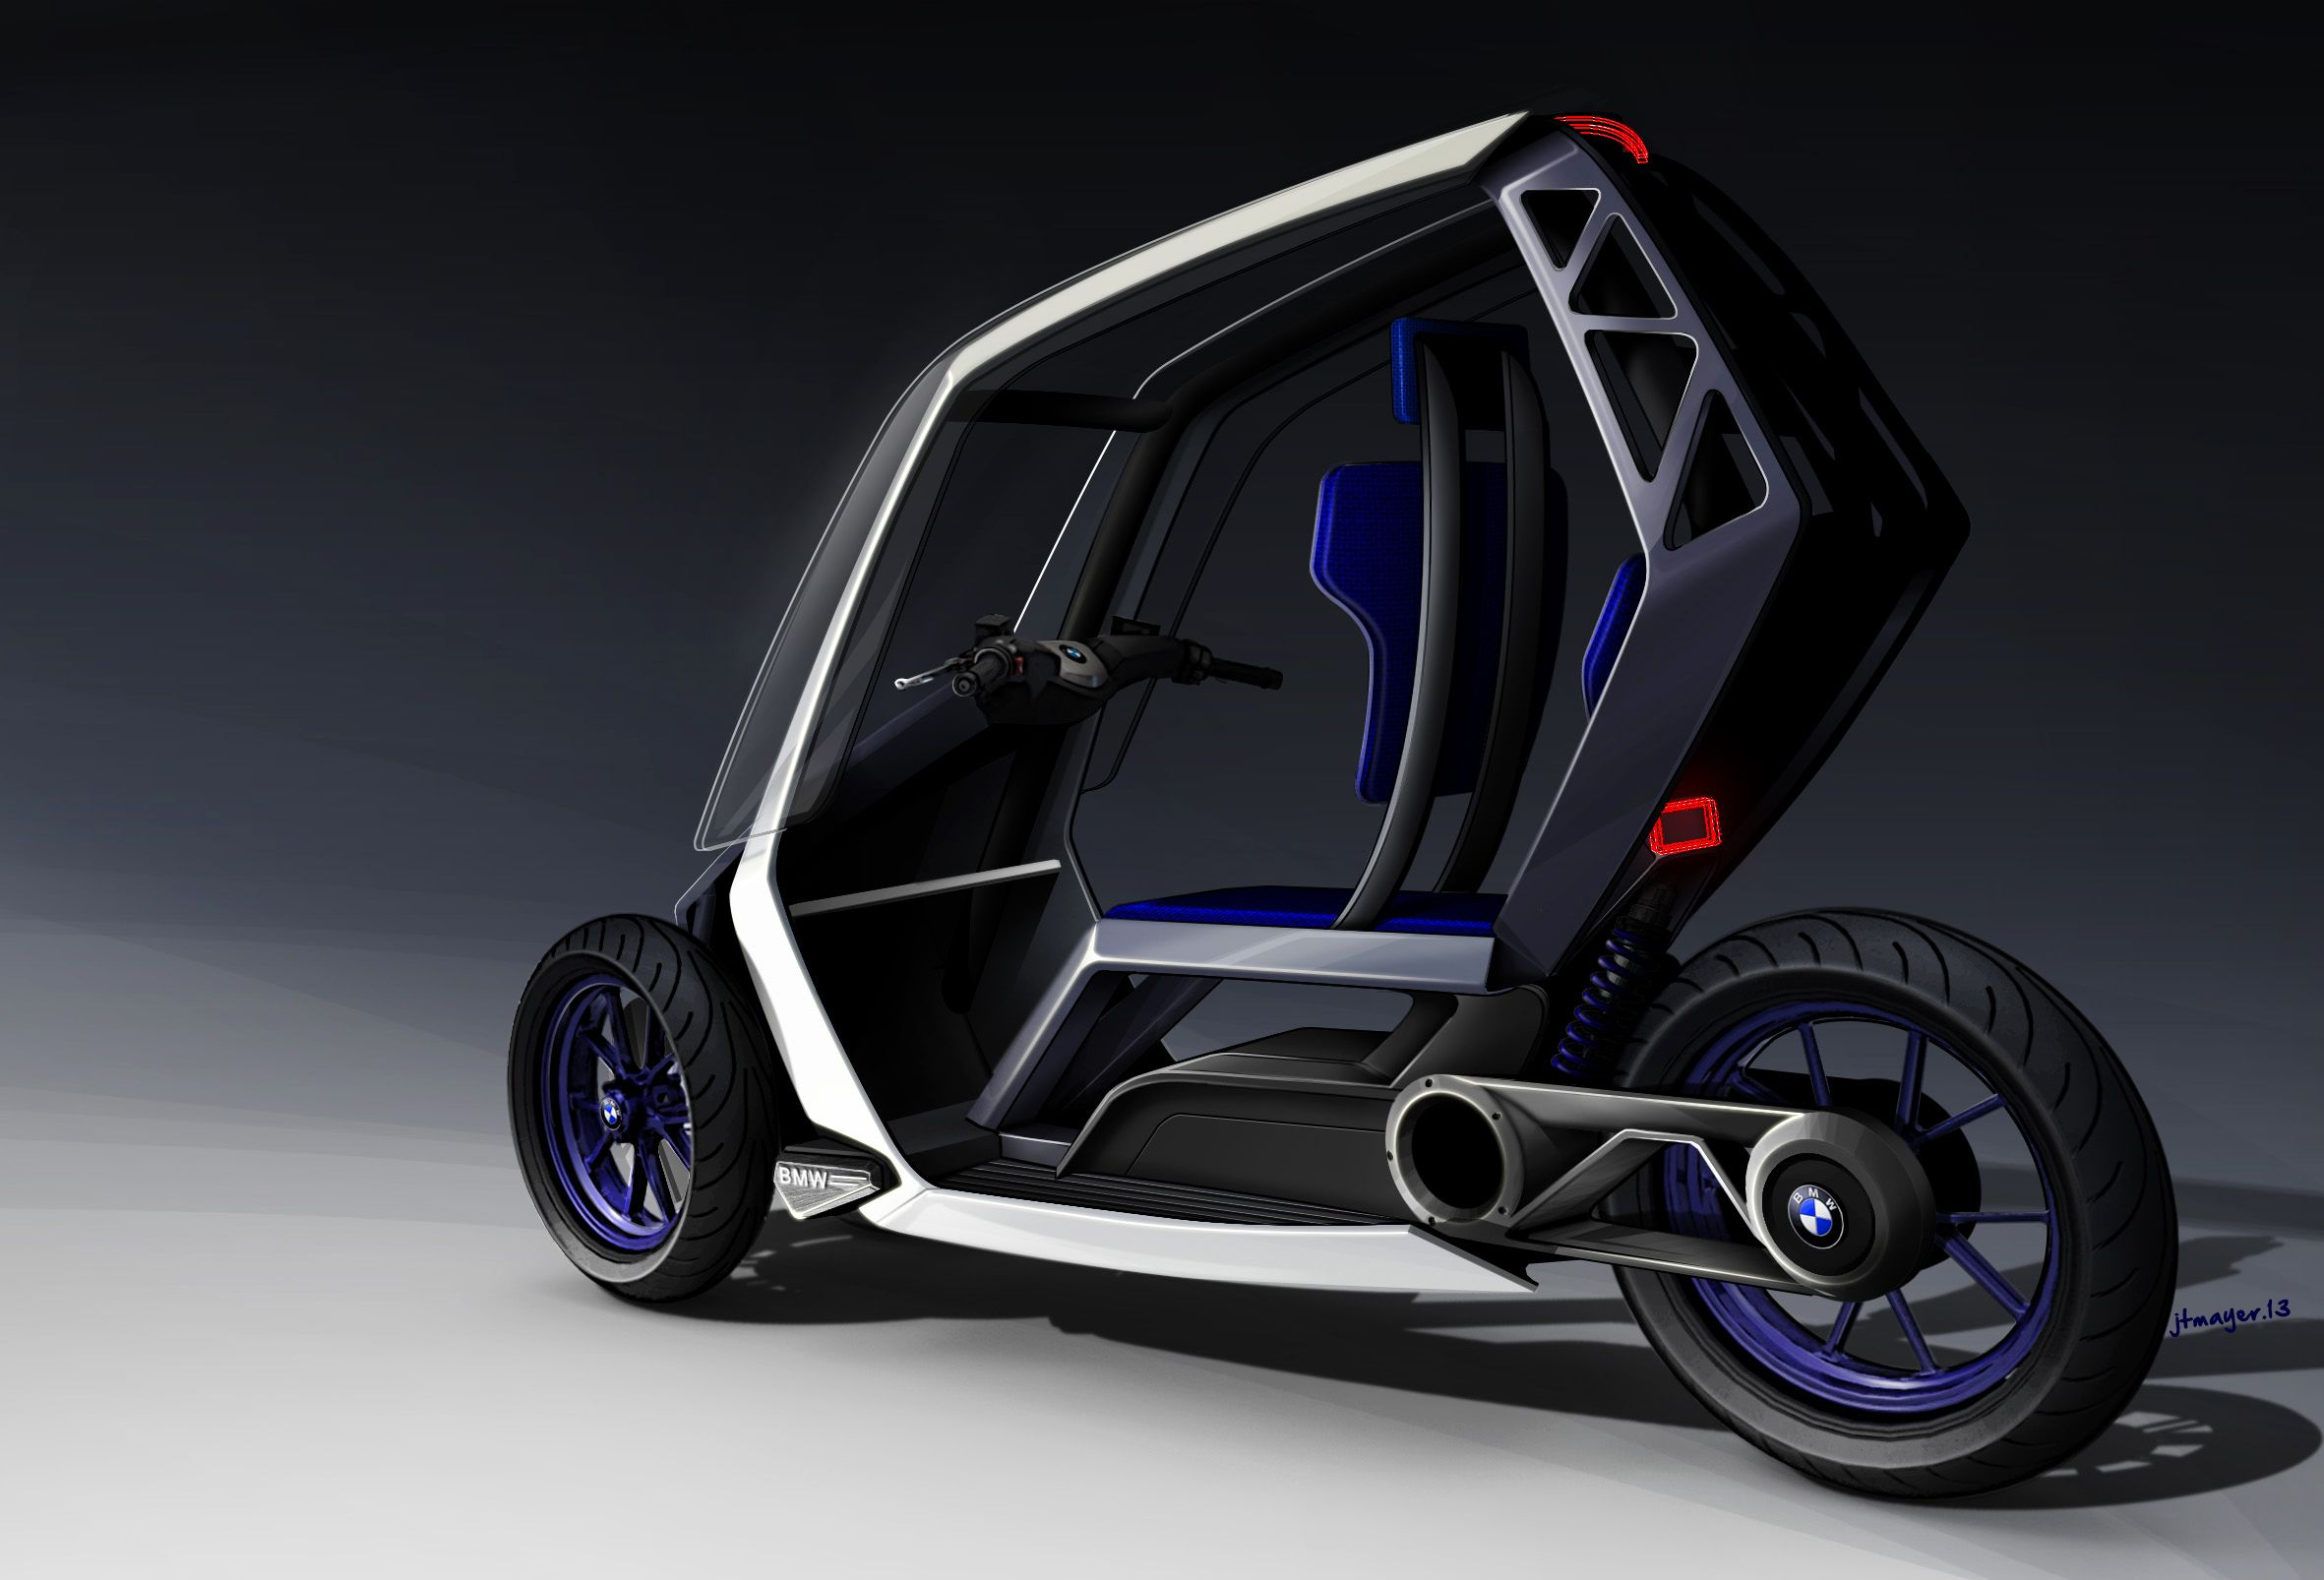 BMW C1+ Project  by Jean-Thomas Mayer / ISD